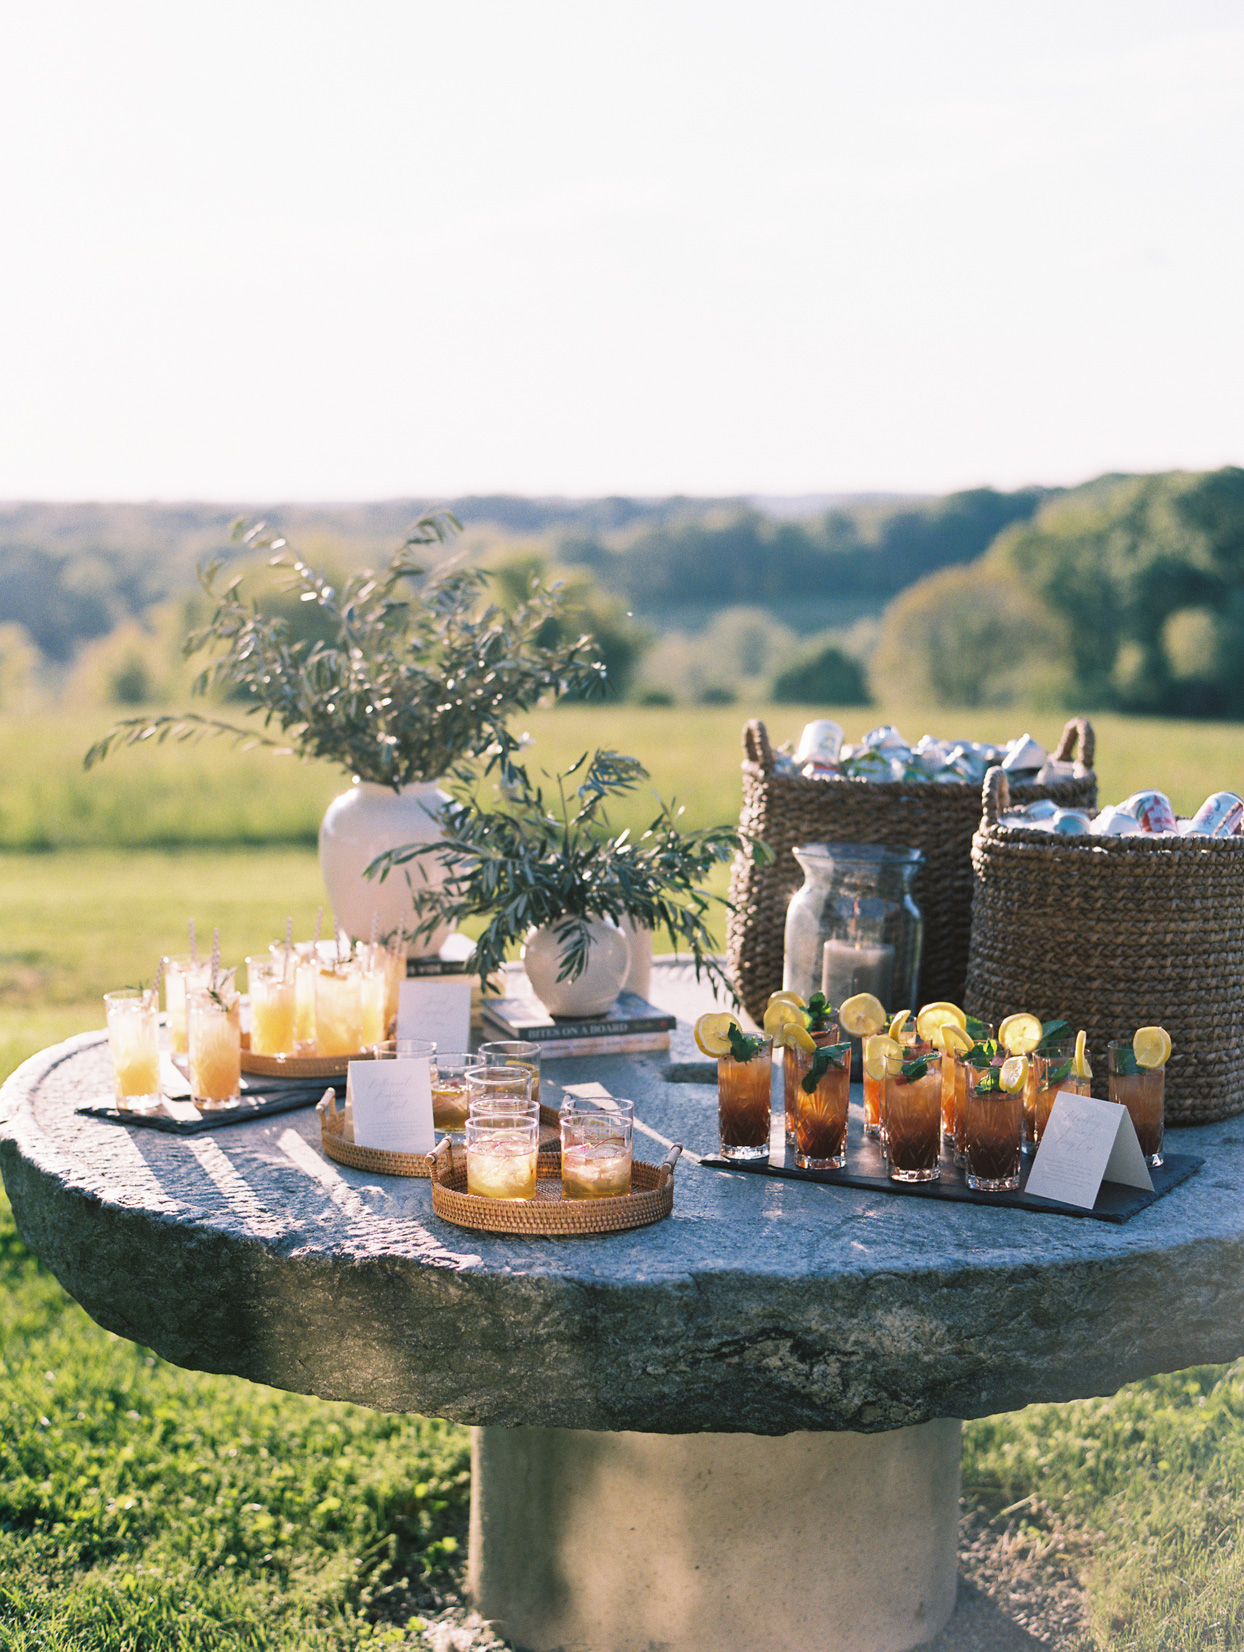 stone table topped with various cocktails and drinks for welcome dinner